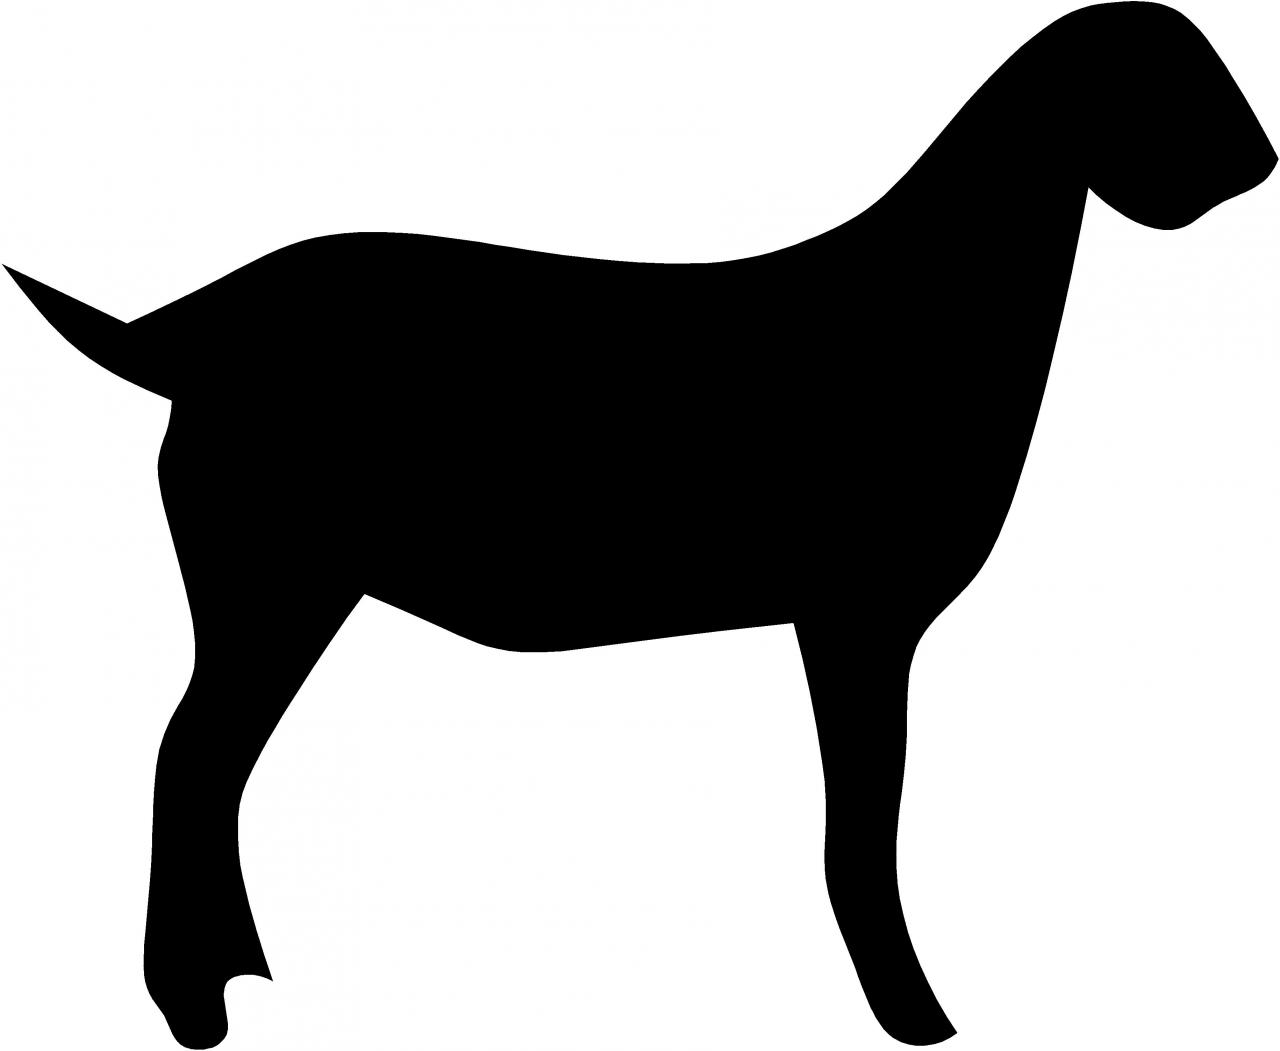 Billy Goat clipart nubian Clipart Panda Images Silhouette Clipart